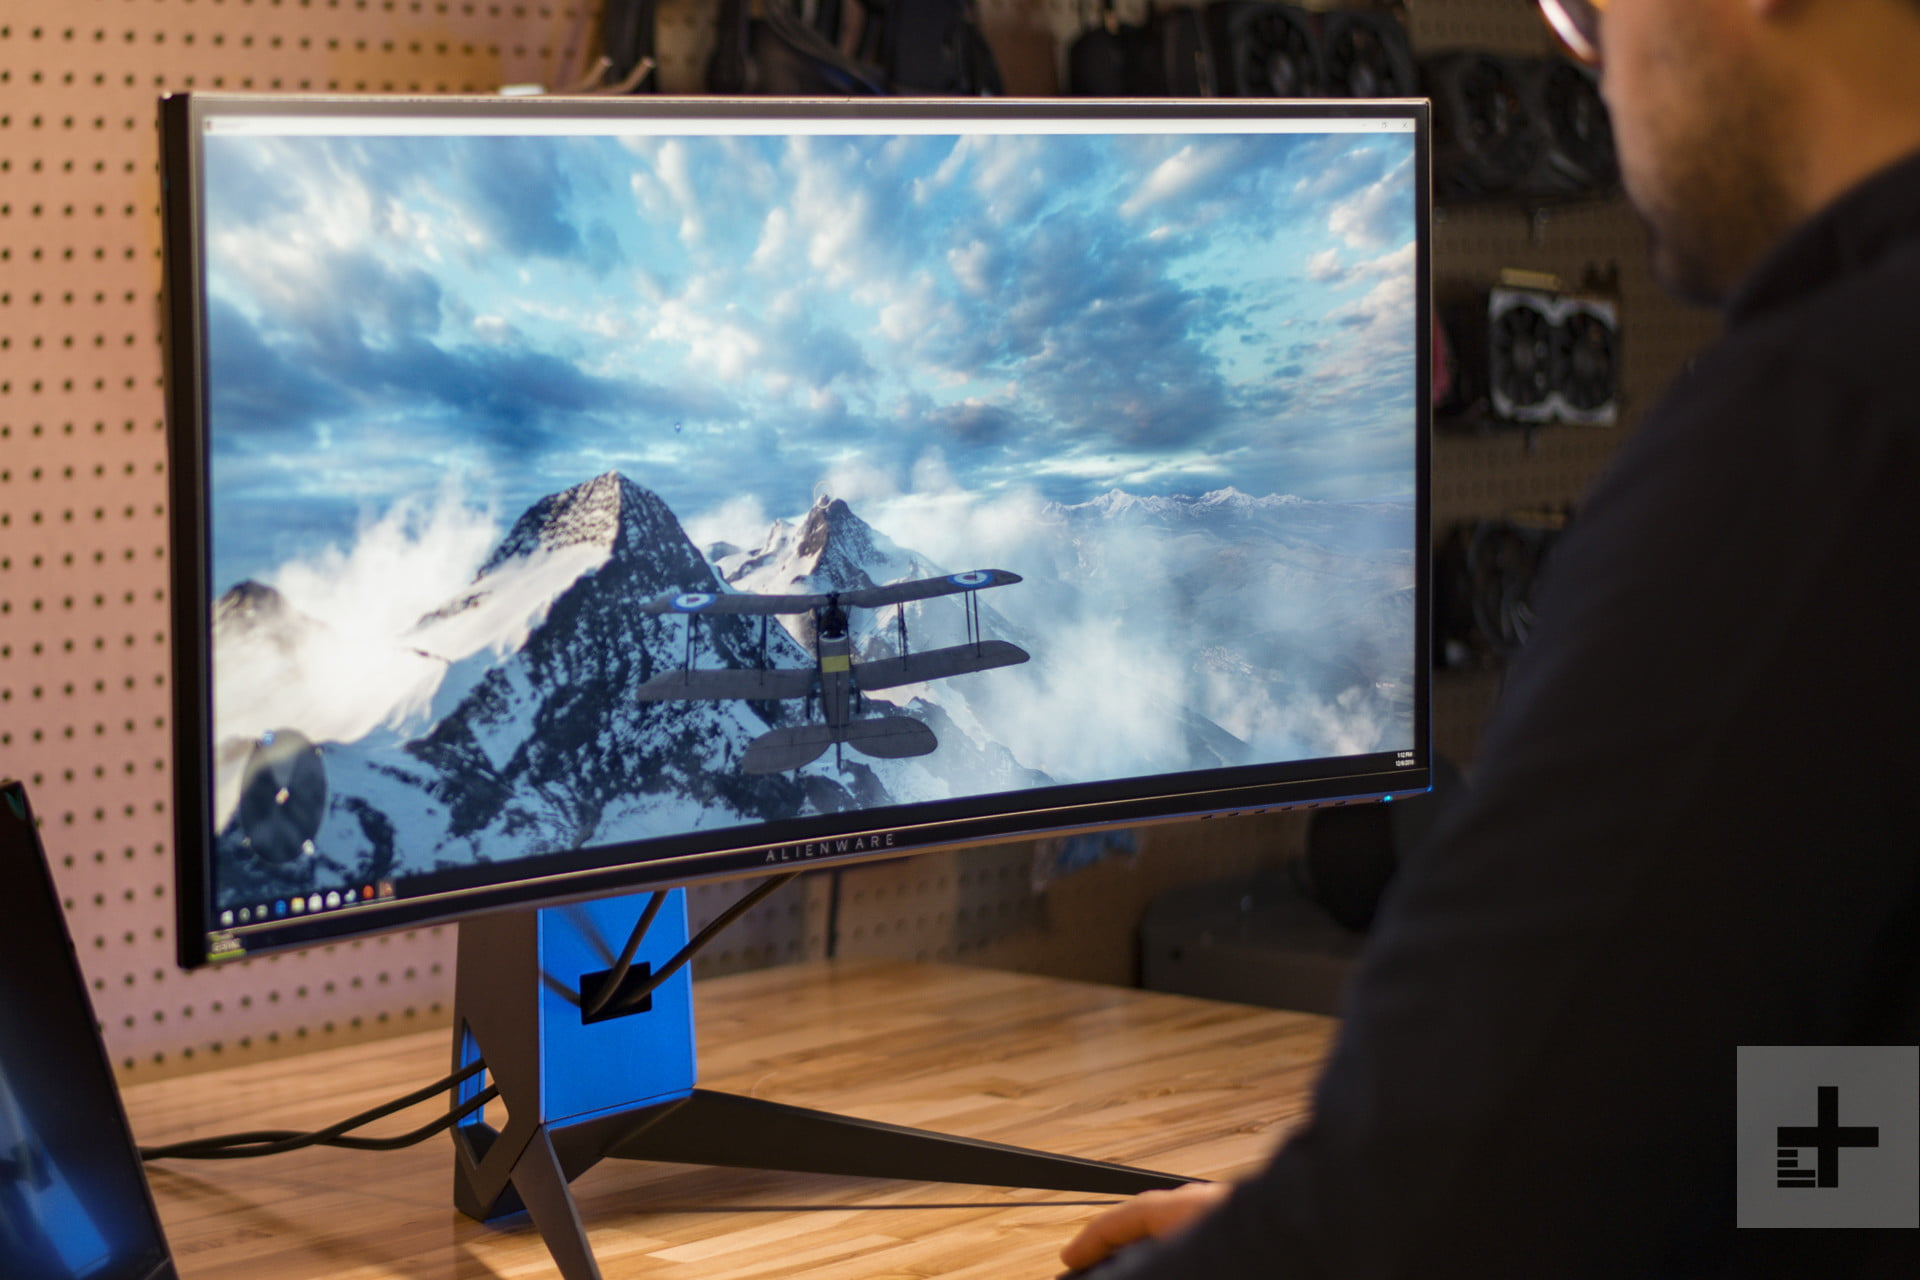 The Best Gaming Monitors for 2019: 144Hz, 4K, Budget, and